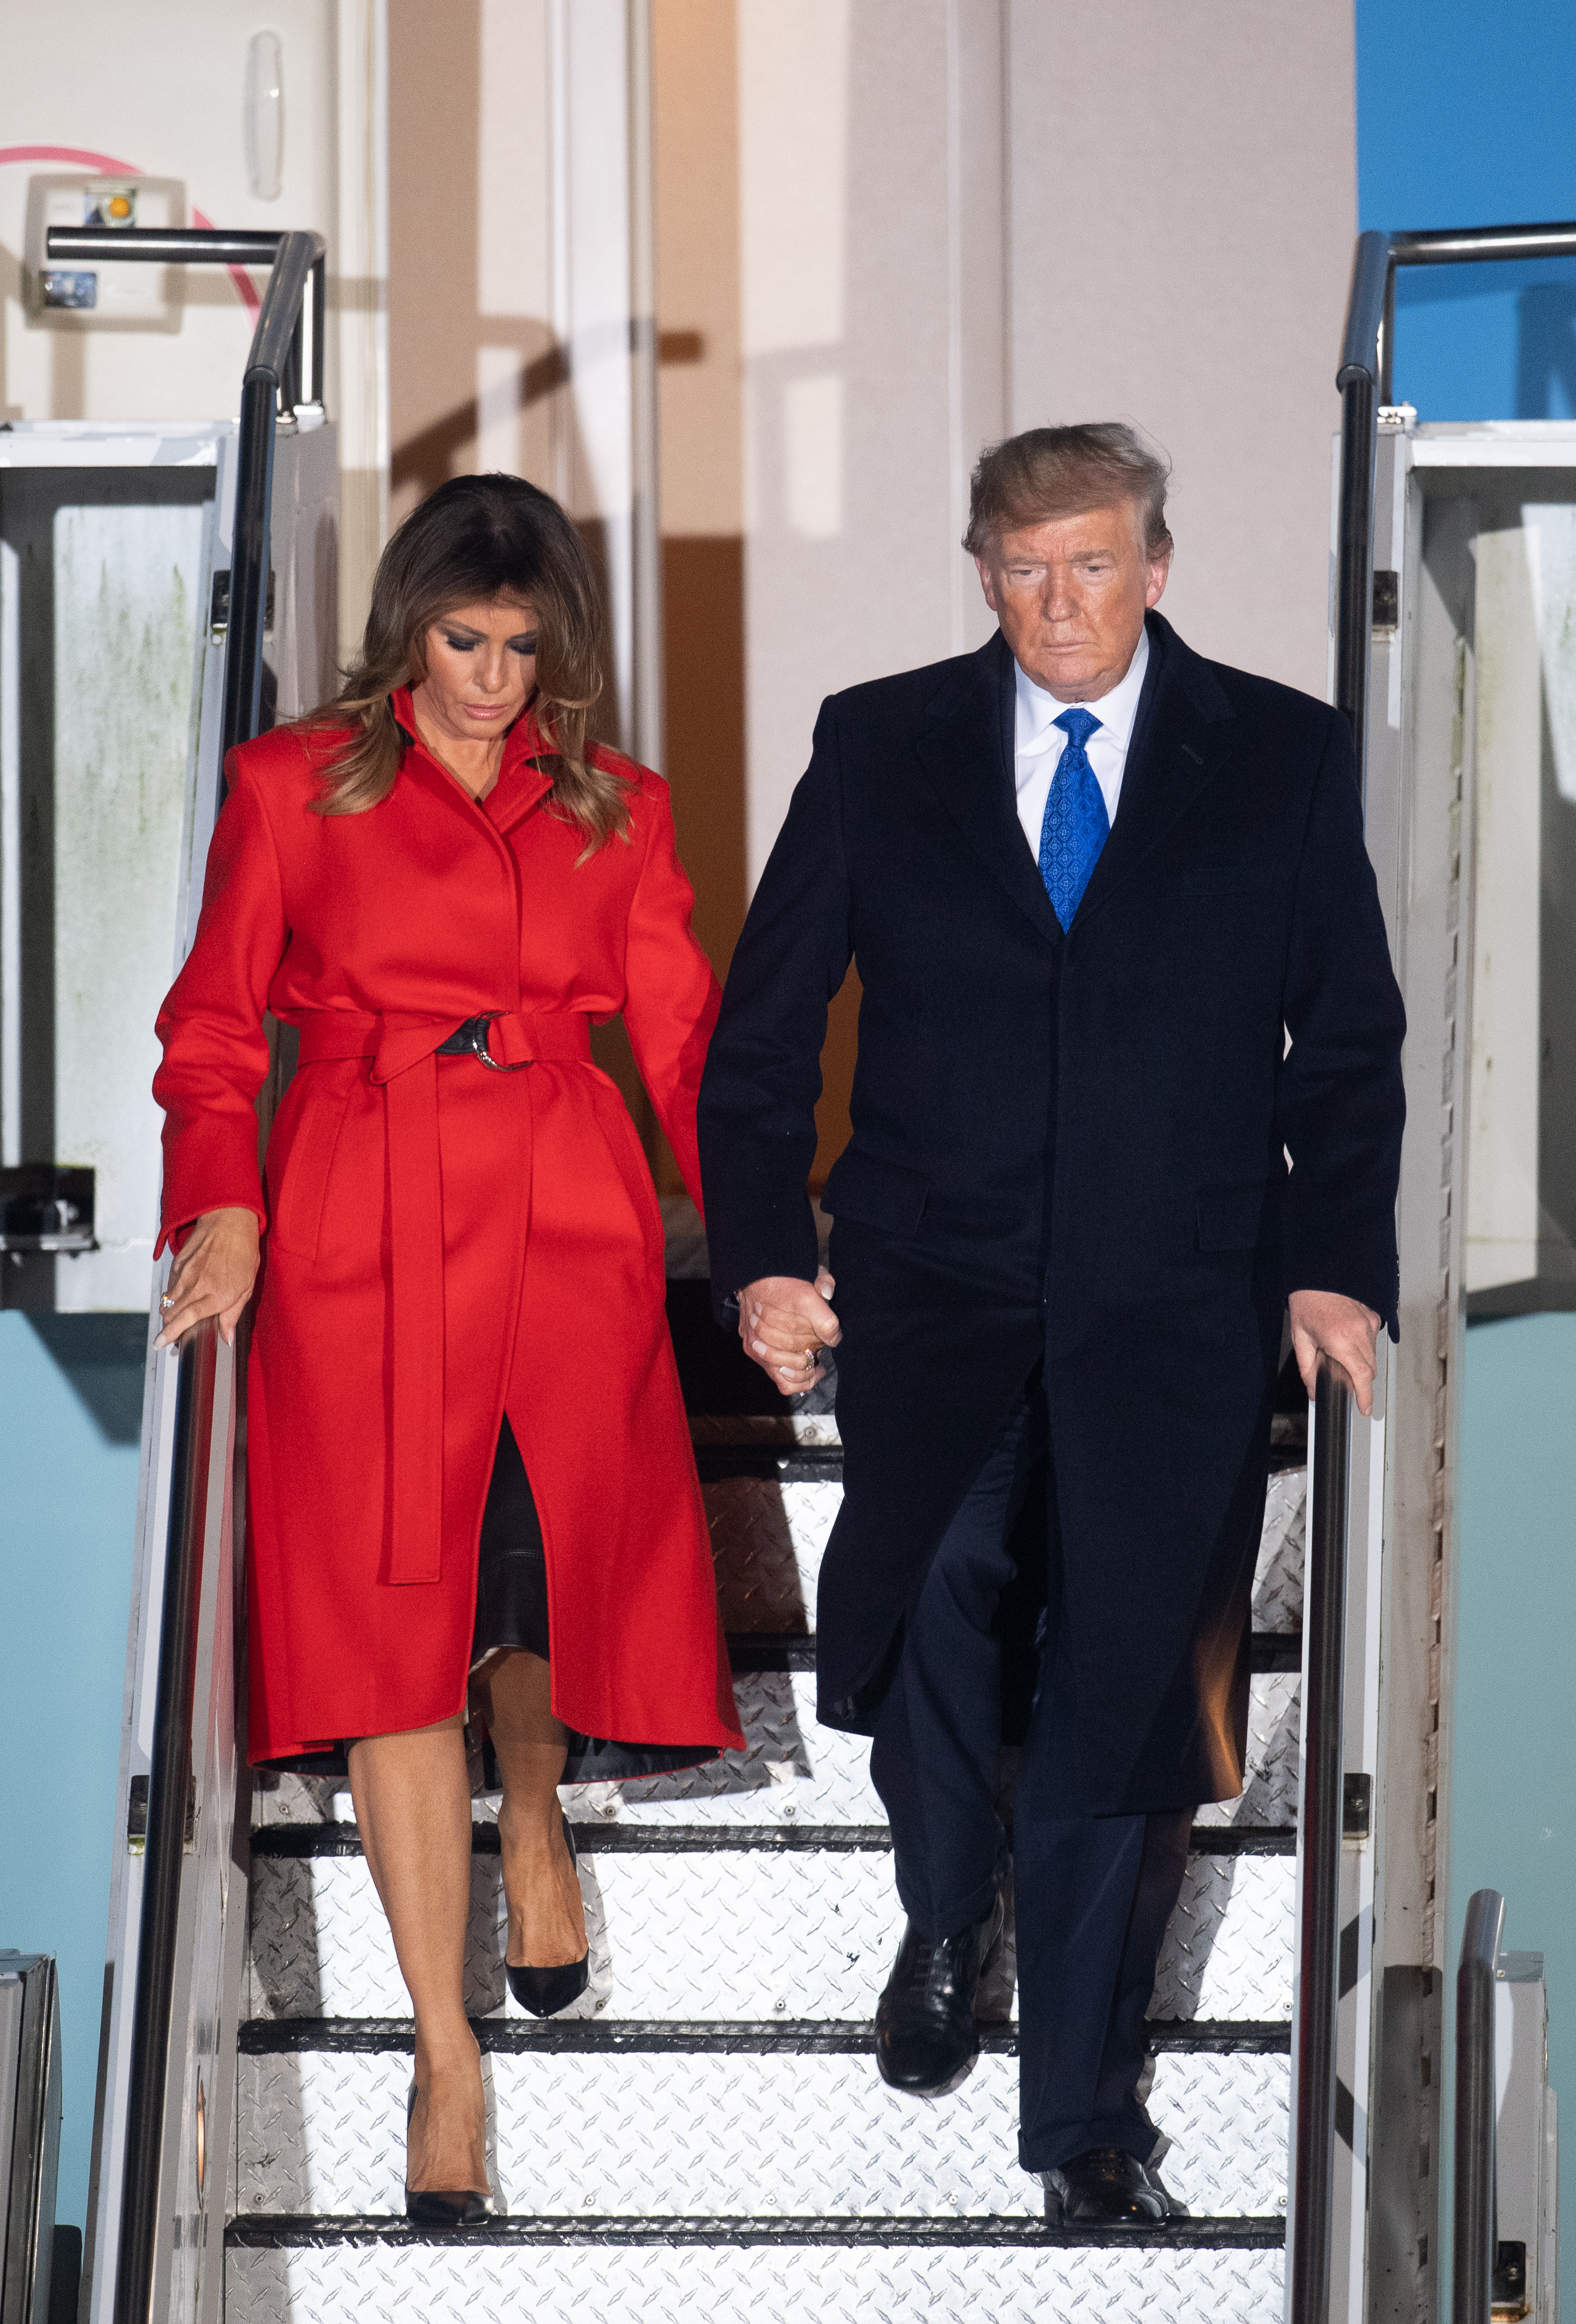 US President Donald Trump and his wife Melania, arrive at Stansted Airport, London, ahead of the NATO summit, on the first day of his visit to the United Kingdom.